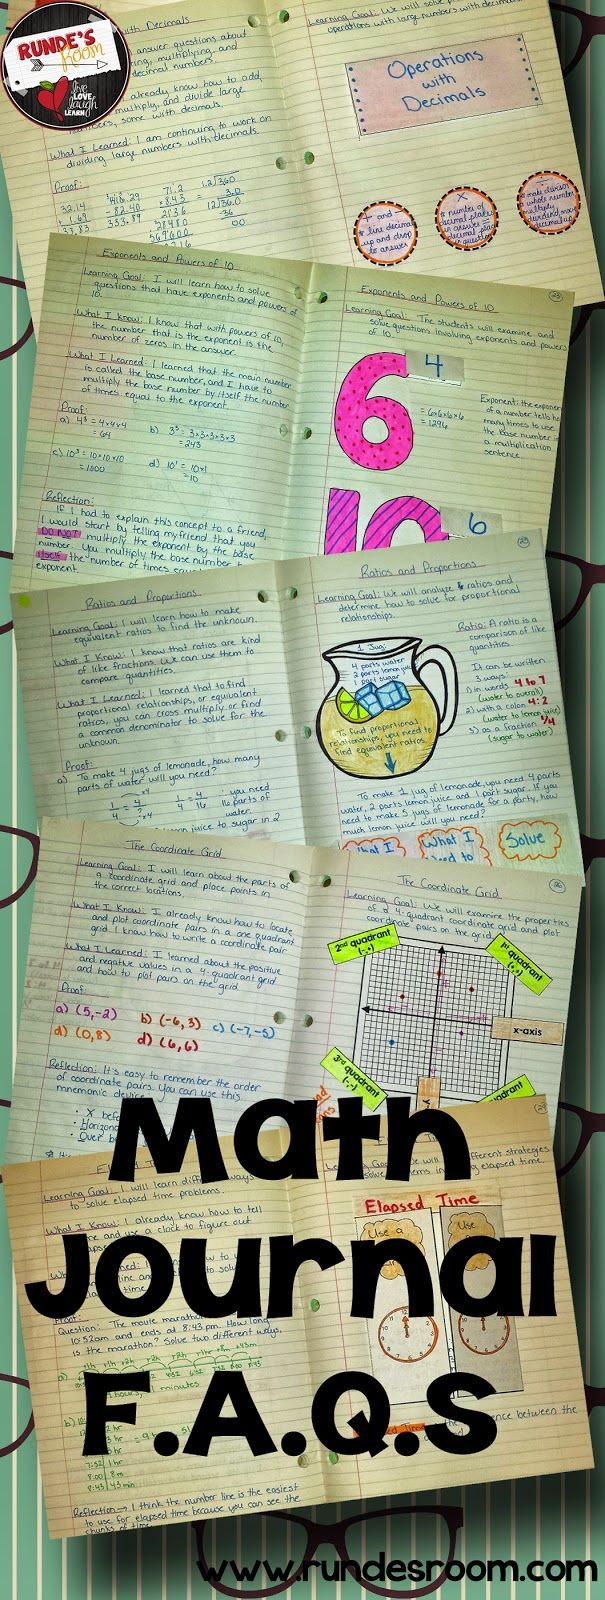 Classroom Journal Ideas ~ Best images about teaching on pinterest classroom